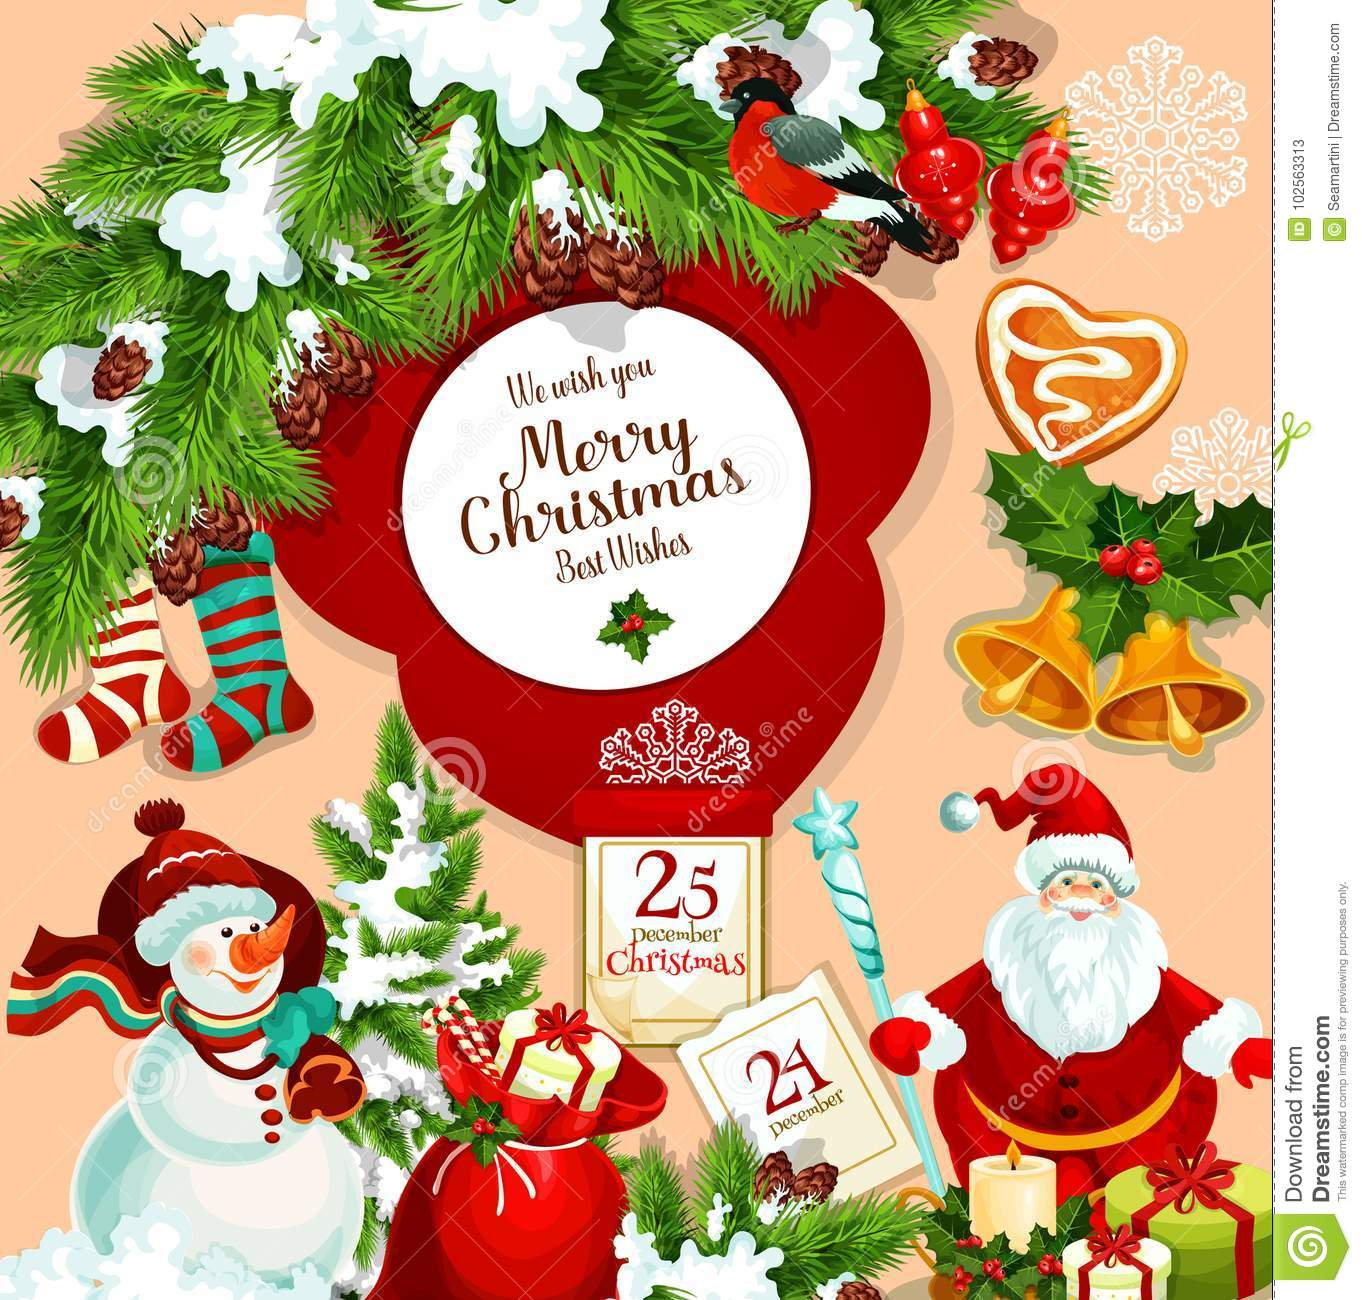 Merry Christmas Wishes Greeting Cards.Merry Christmas Vector Santa Gift Greeting Card Stock Vector